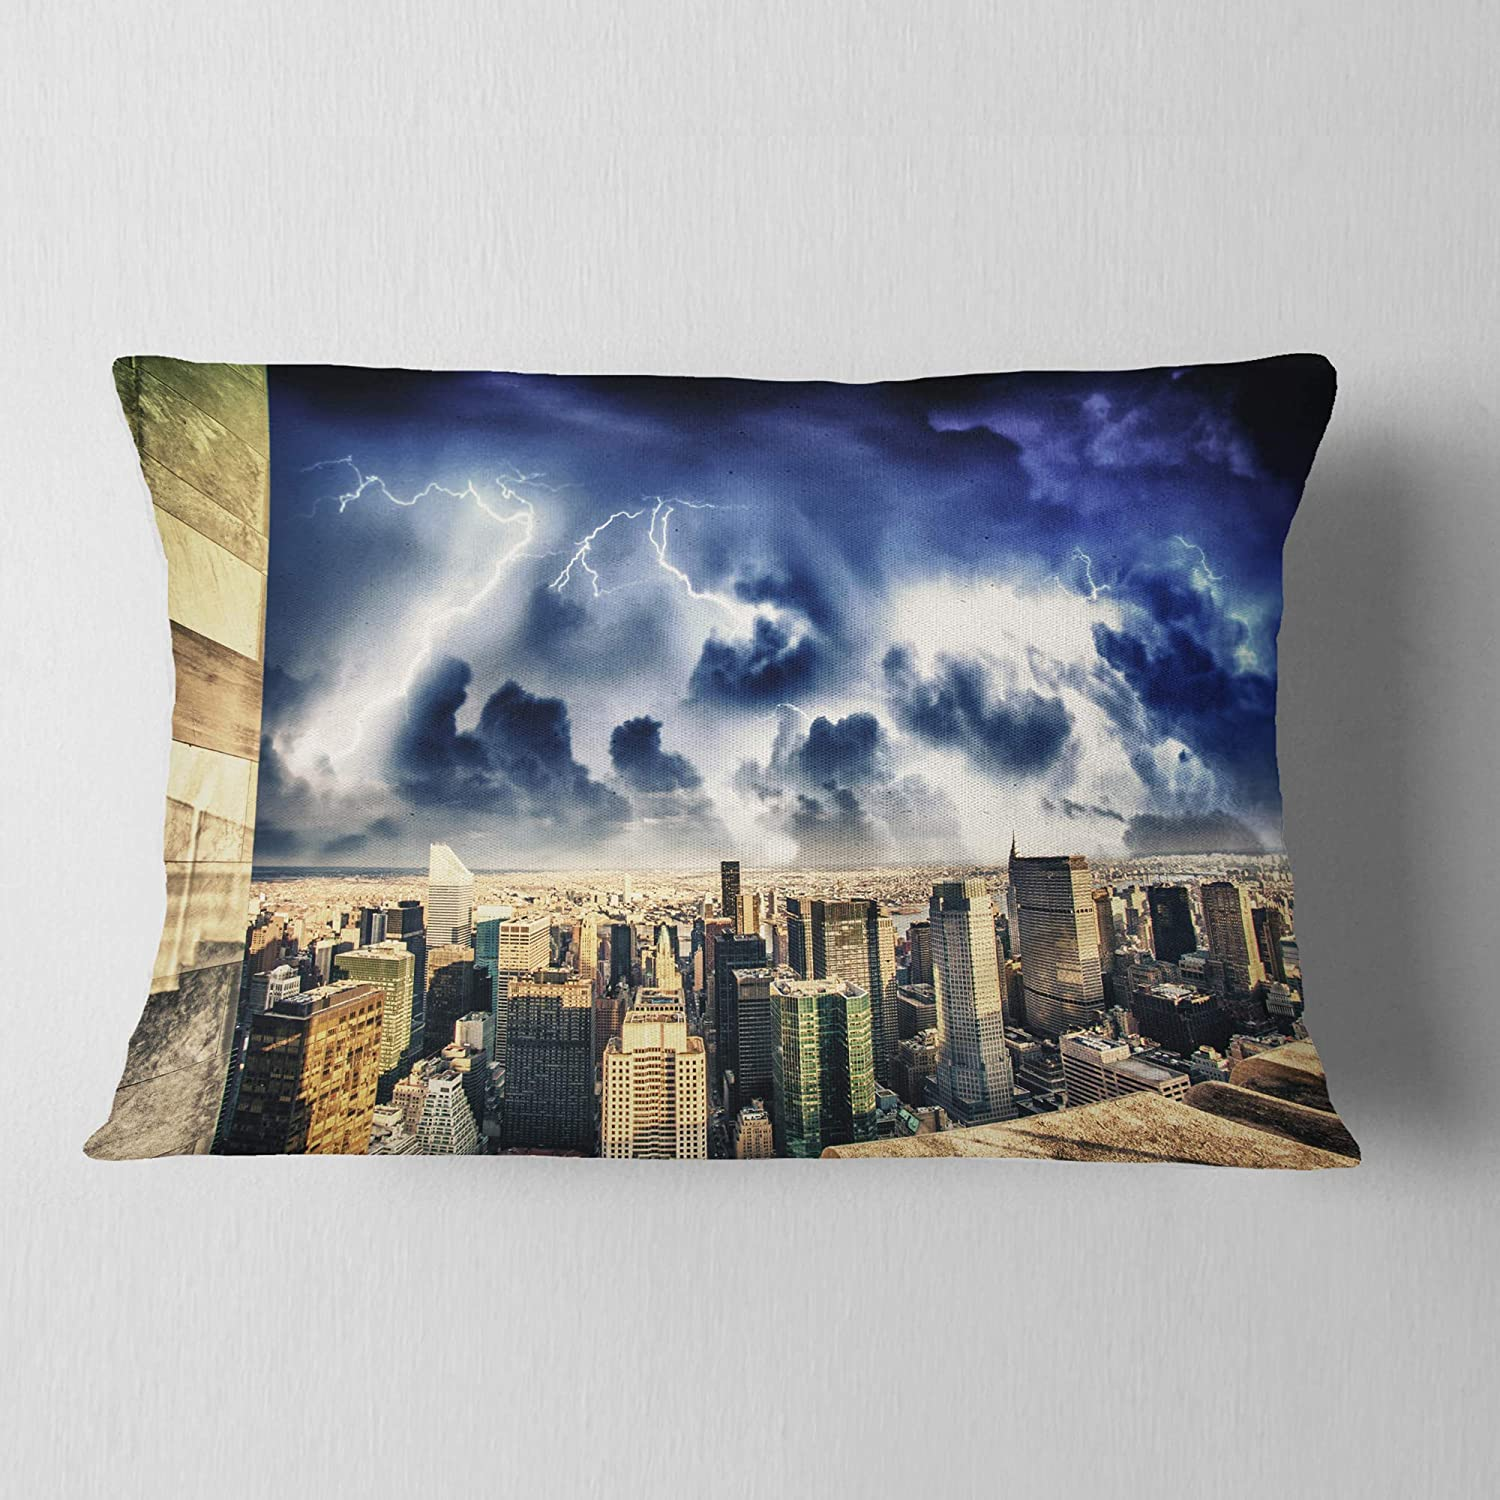 Insert Printed On Both Side Sofa Throw Pillow 12 In In Designart Cu8307 12 20 Storm